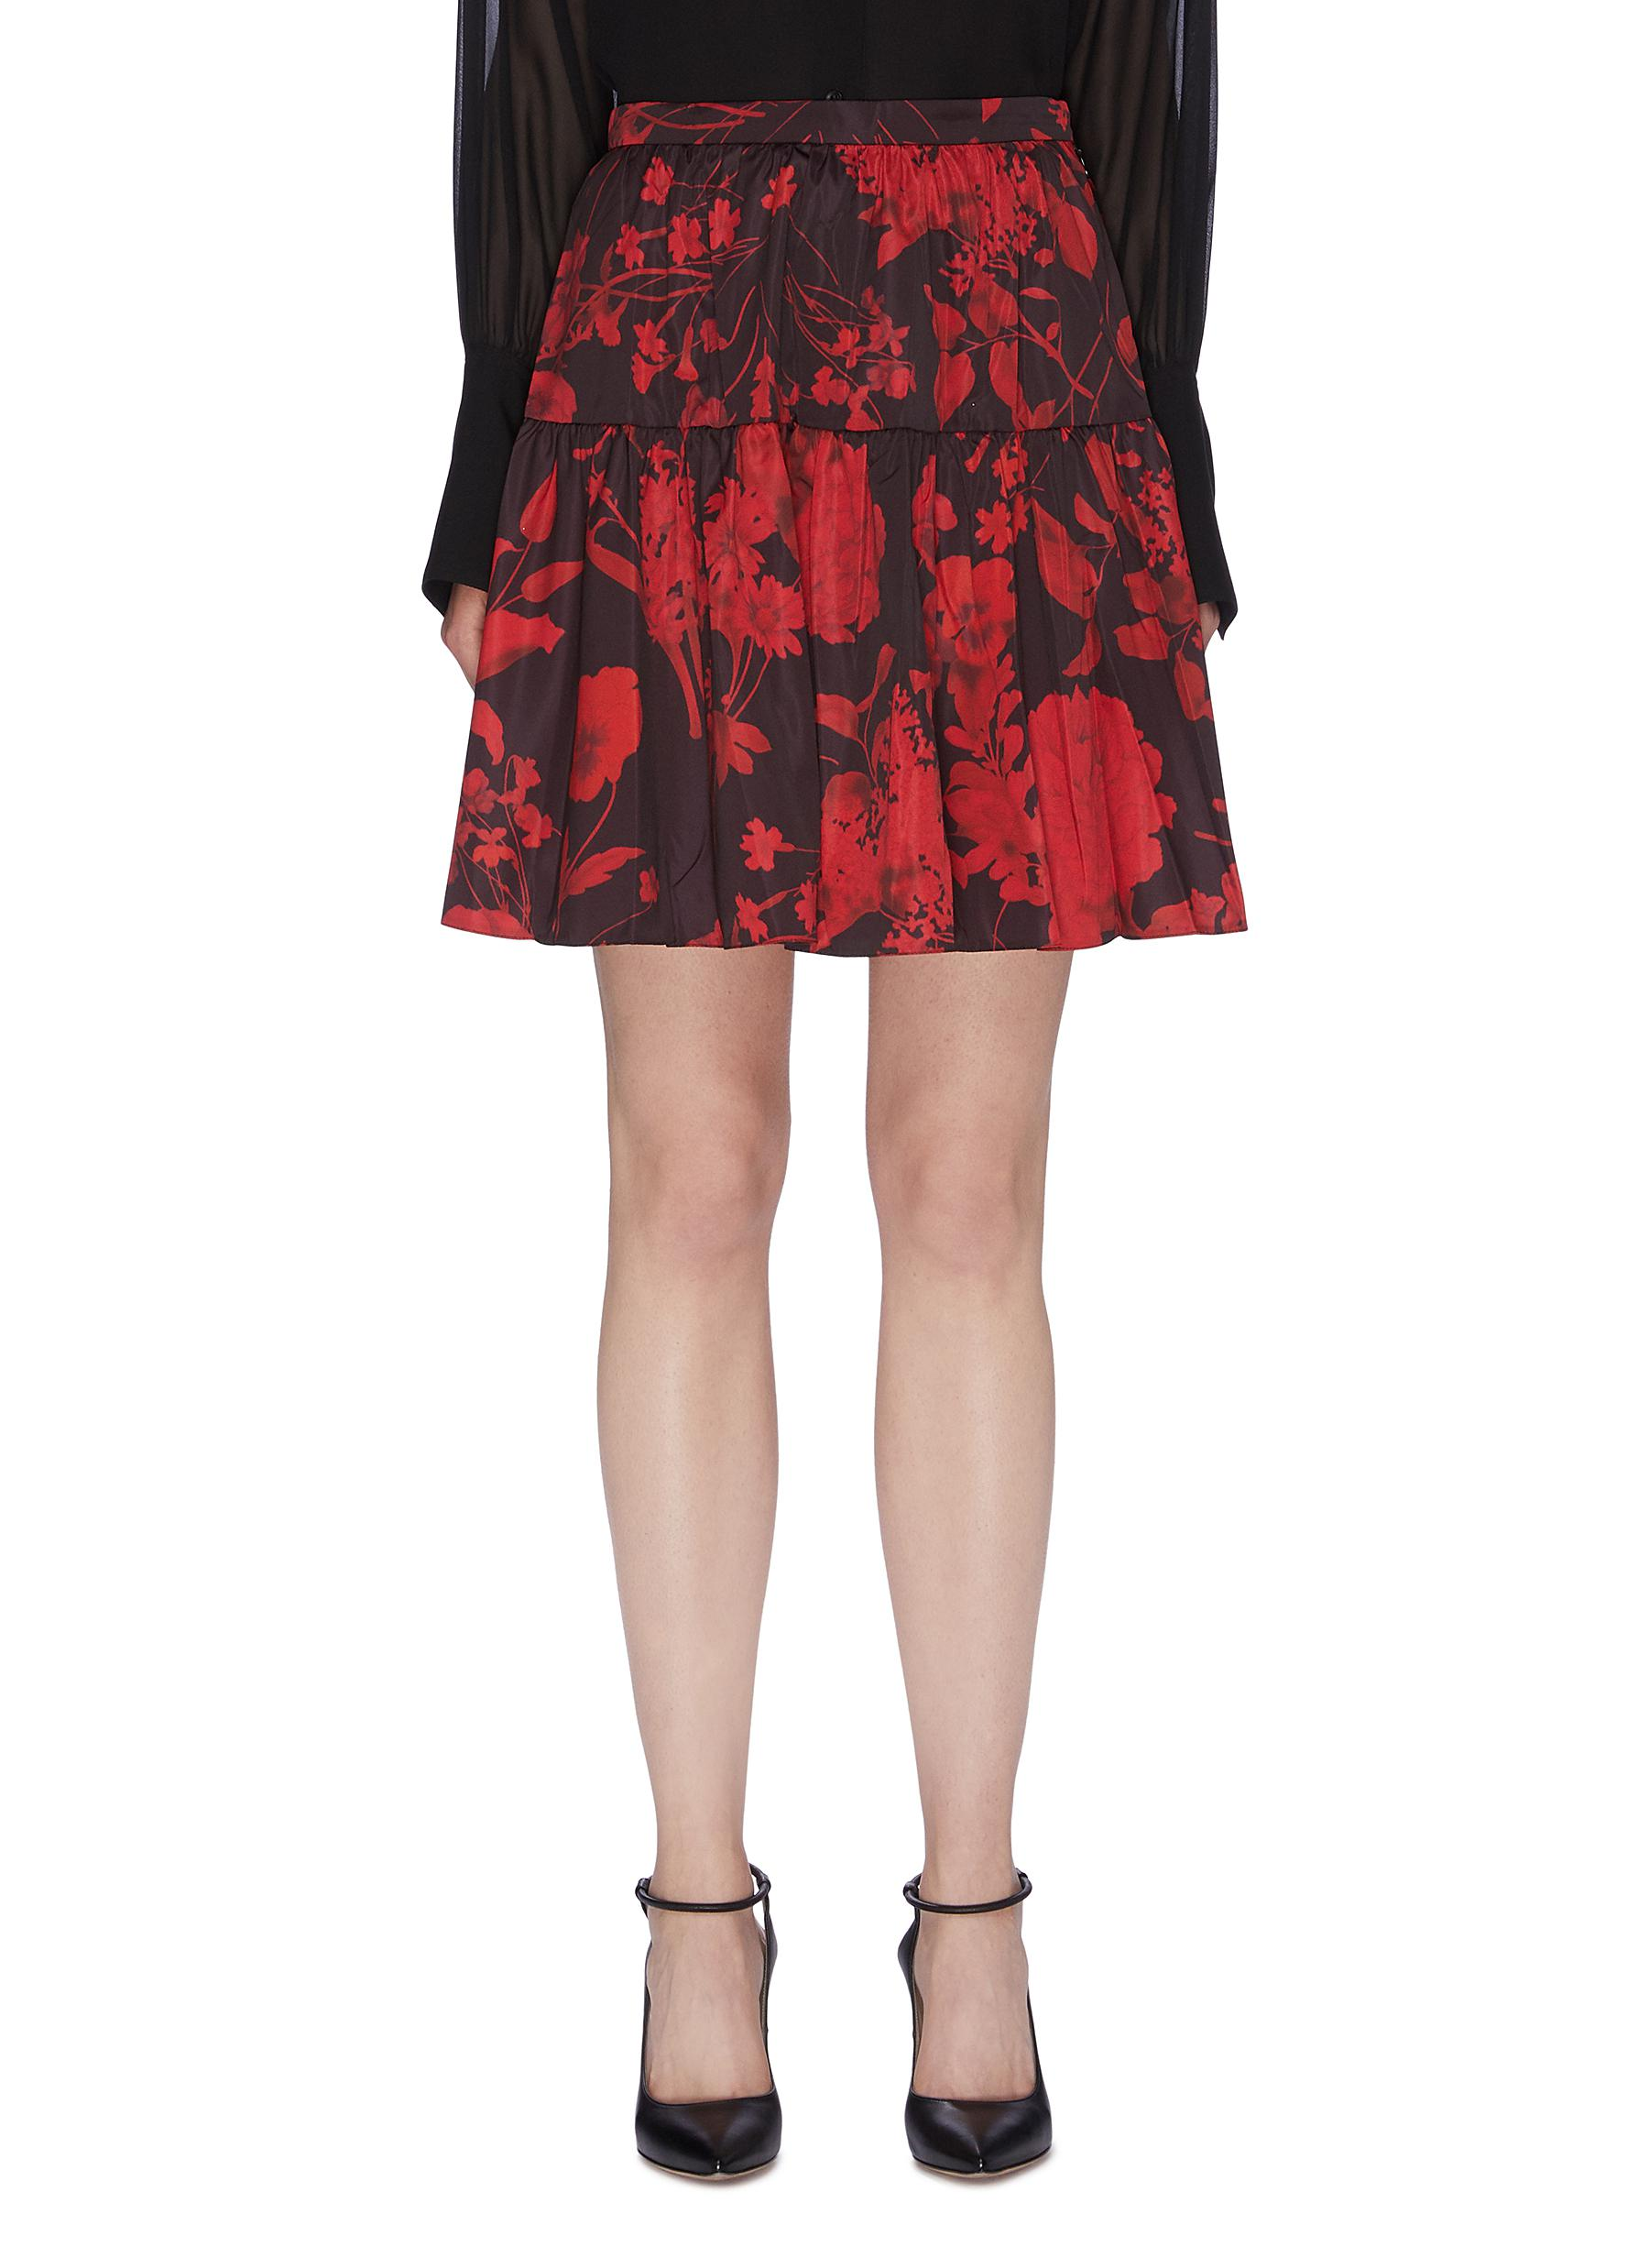 Tiered ruched floral print twill skirt by Valentino